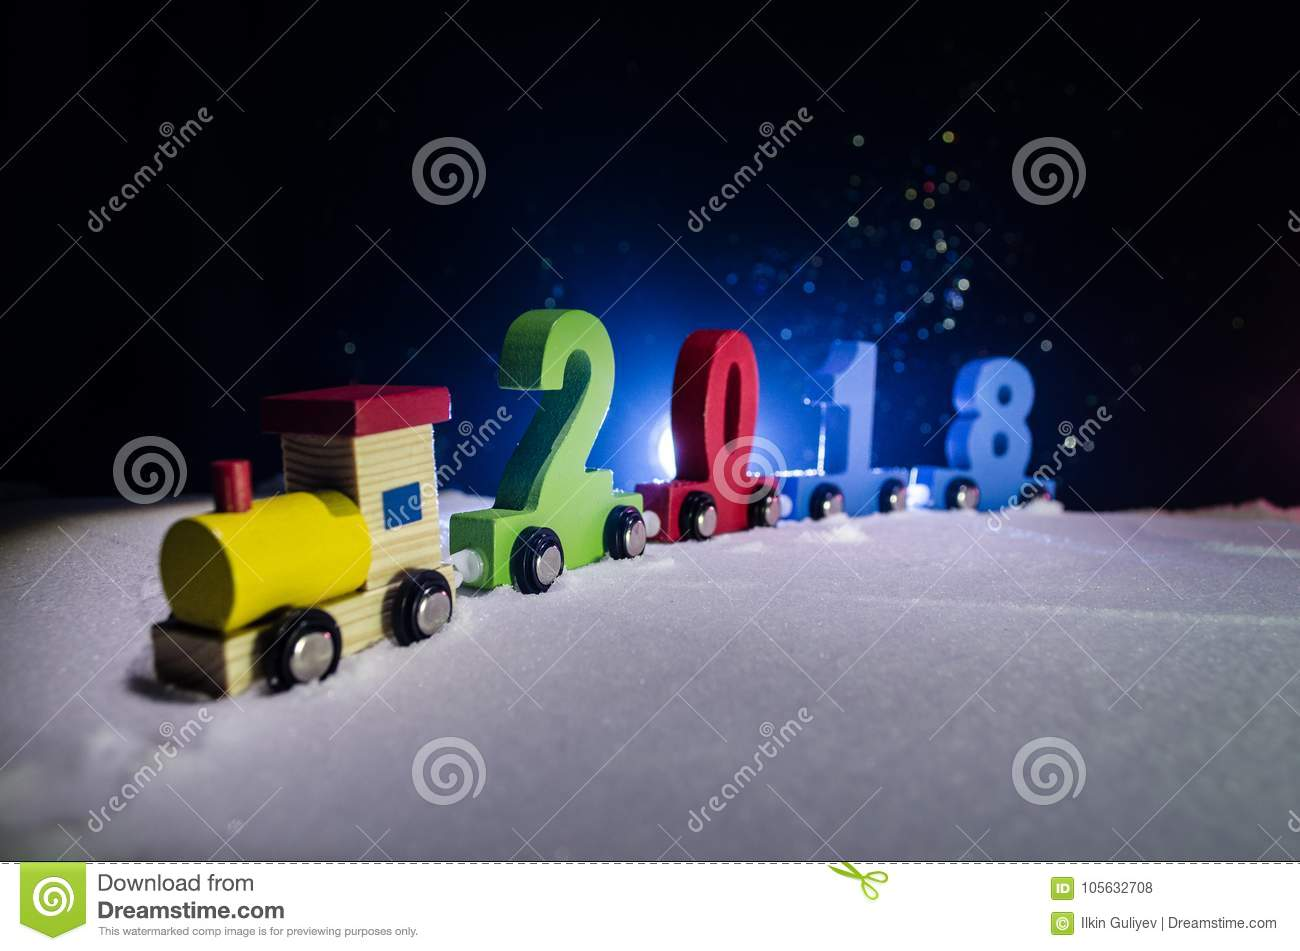 2018 happy new year,wooden toy train carrying numbers of 2018 year on snow. Toy train with 2018. Copy space. Christmas decoration.